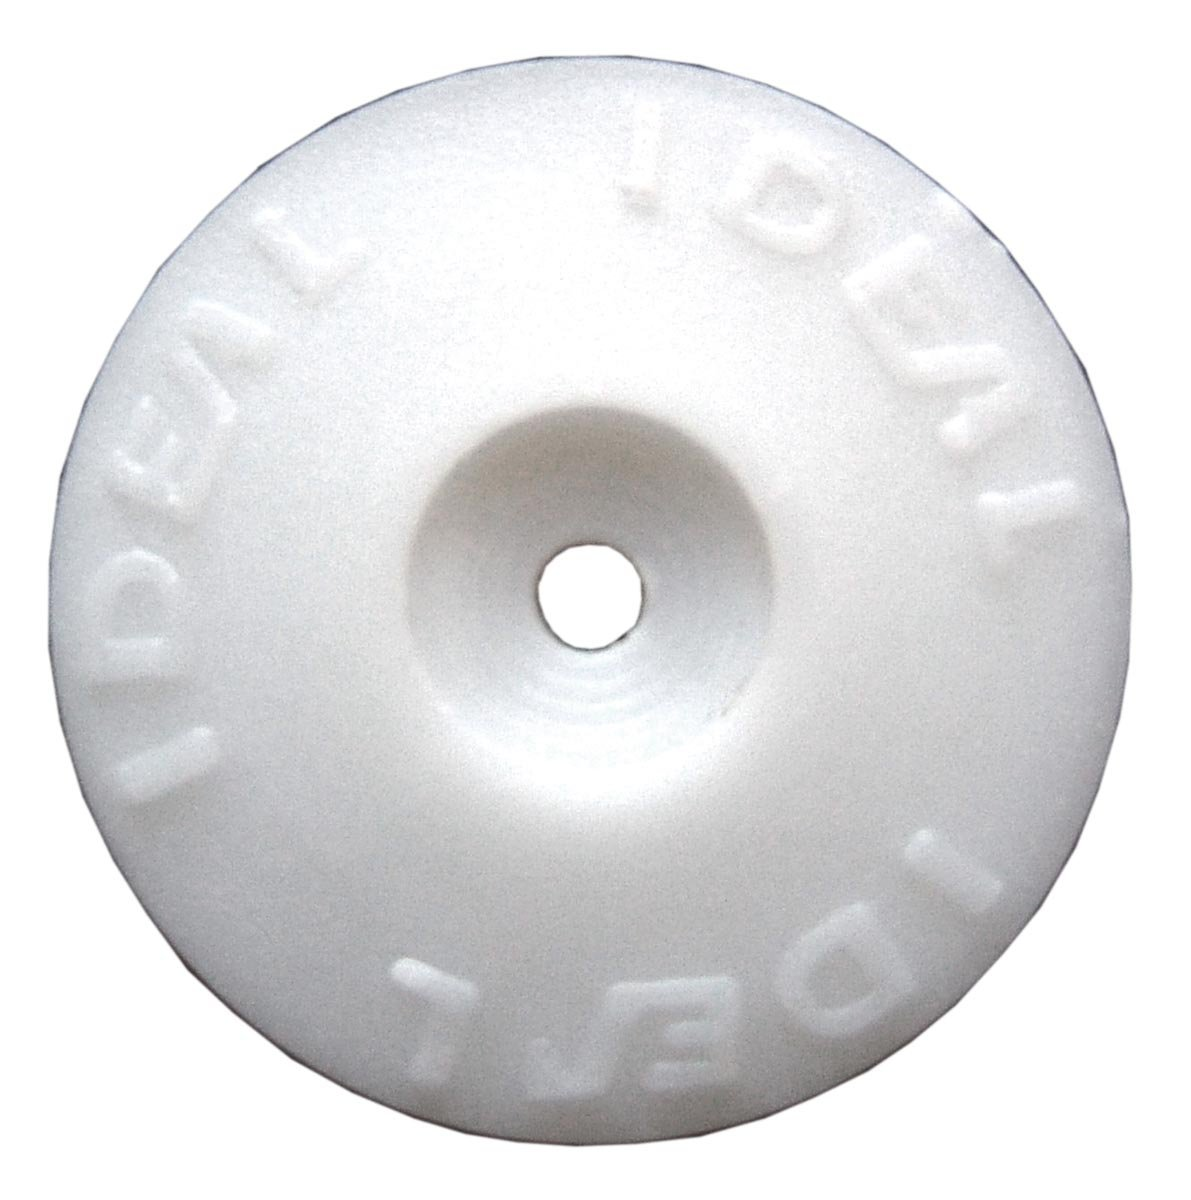 Ideal Security Inc. SKPHC 500/Box Plastic Cap Washers  White Plastic